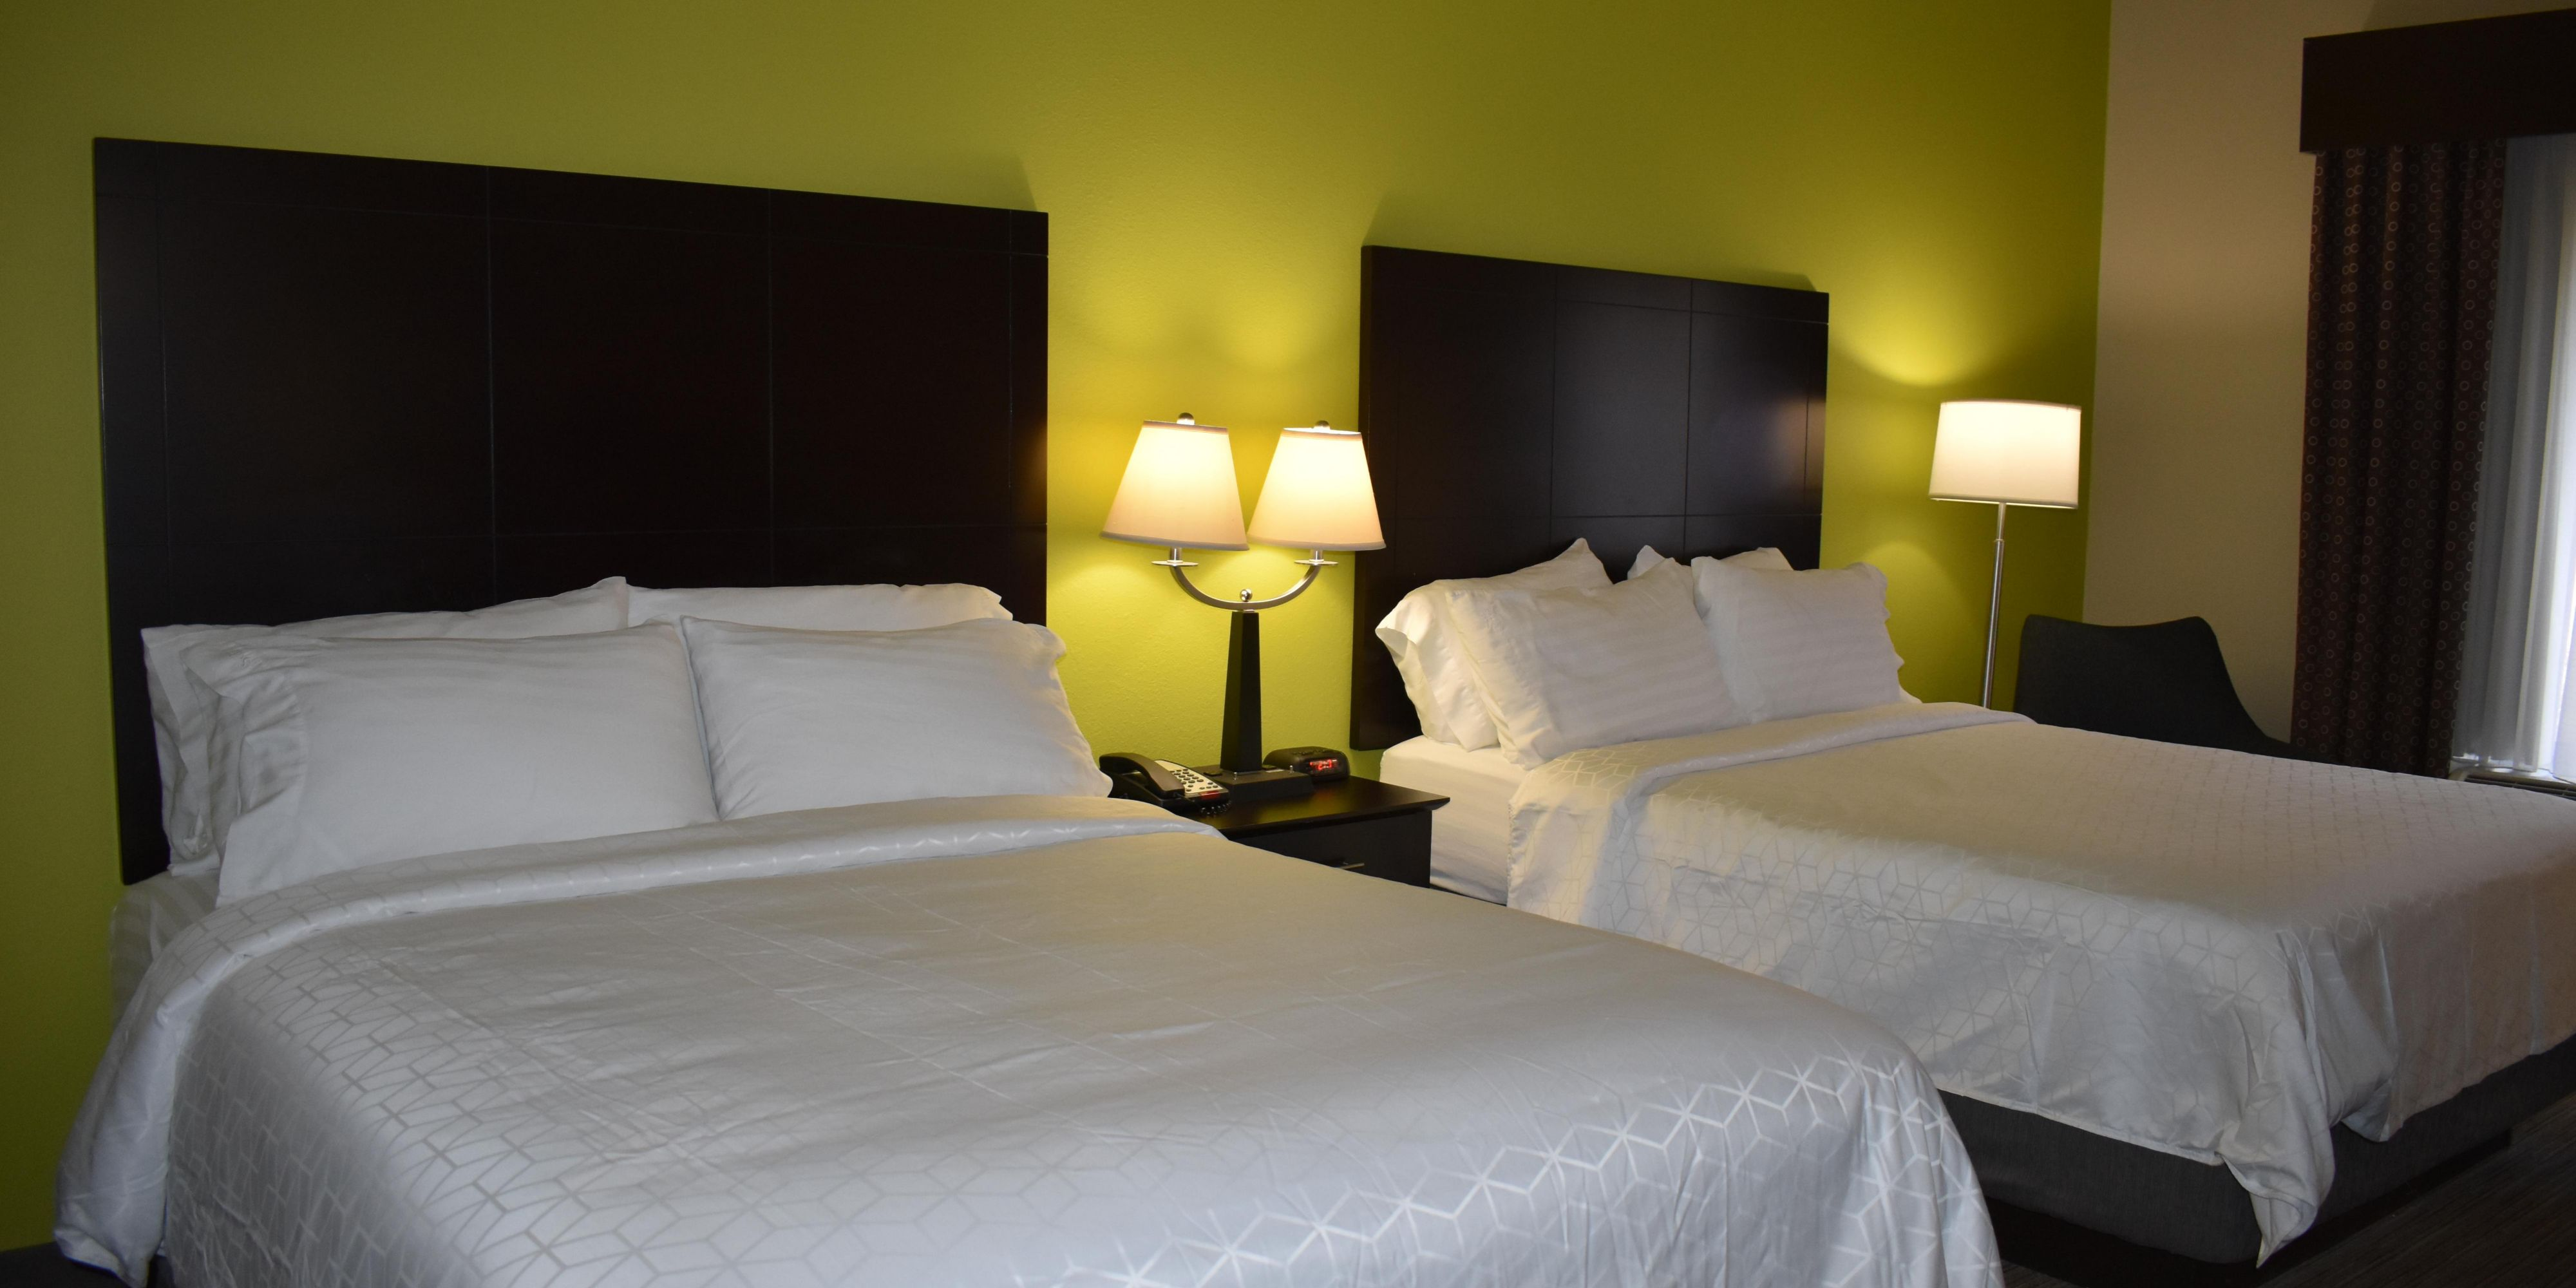 Holiday Inn Express Apex 5770787981 2x1